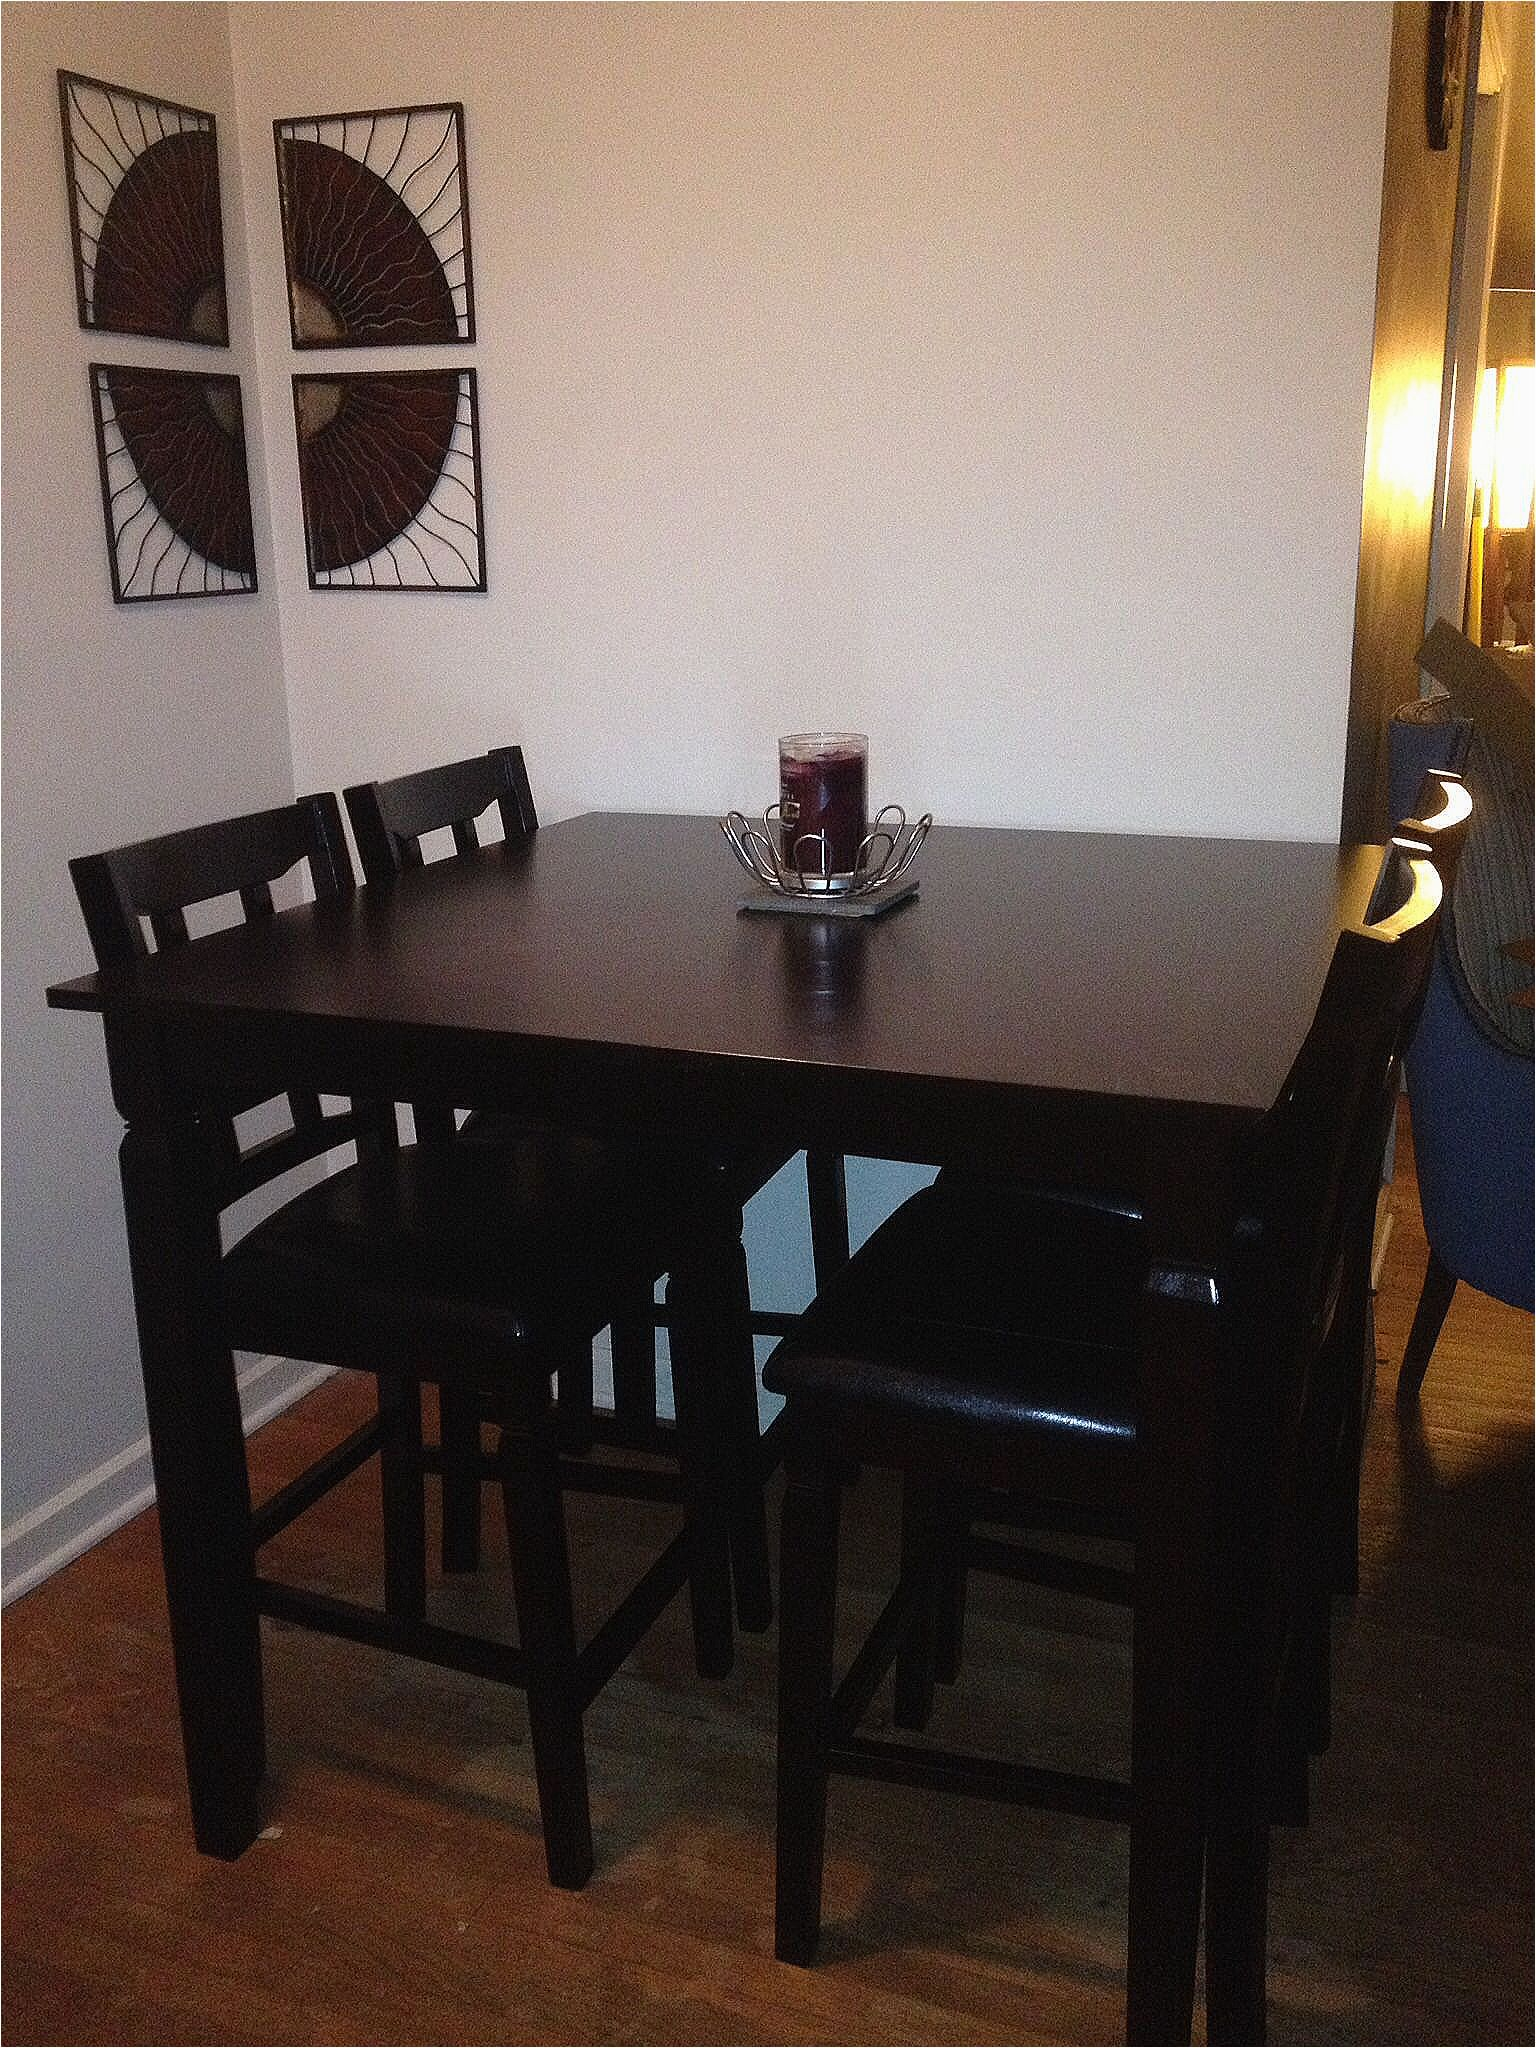 Big Lots Dining Table And Chairs In 2020 Pub Table And Chairs Kitchen Table Settings Dining Table Chairs